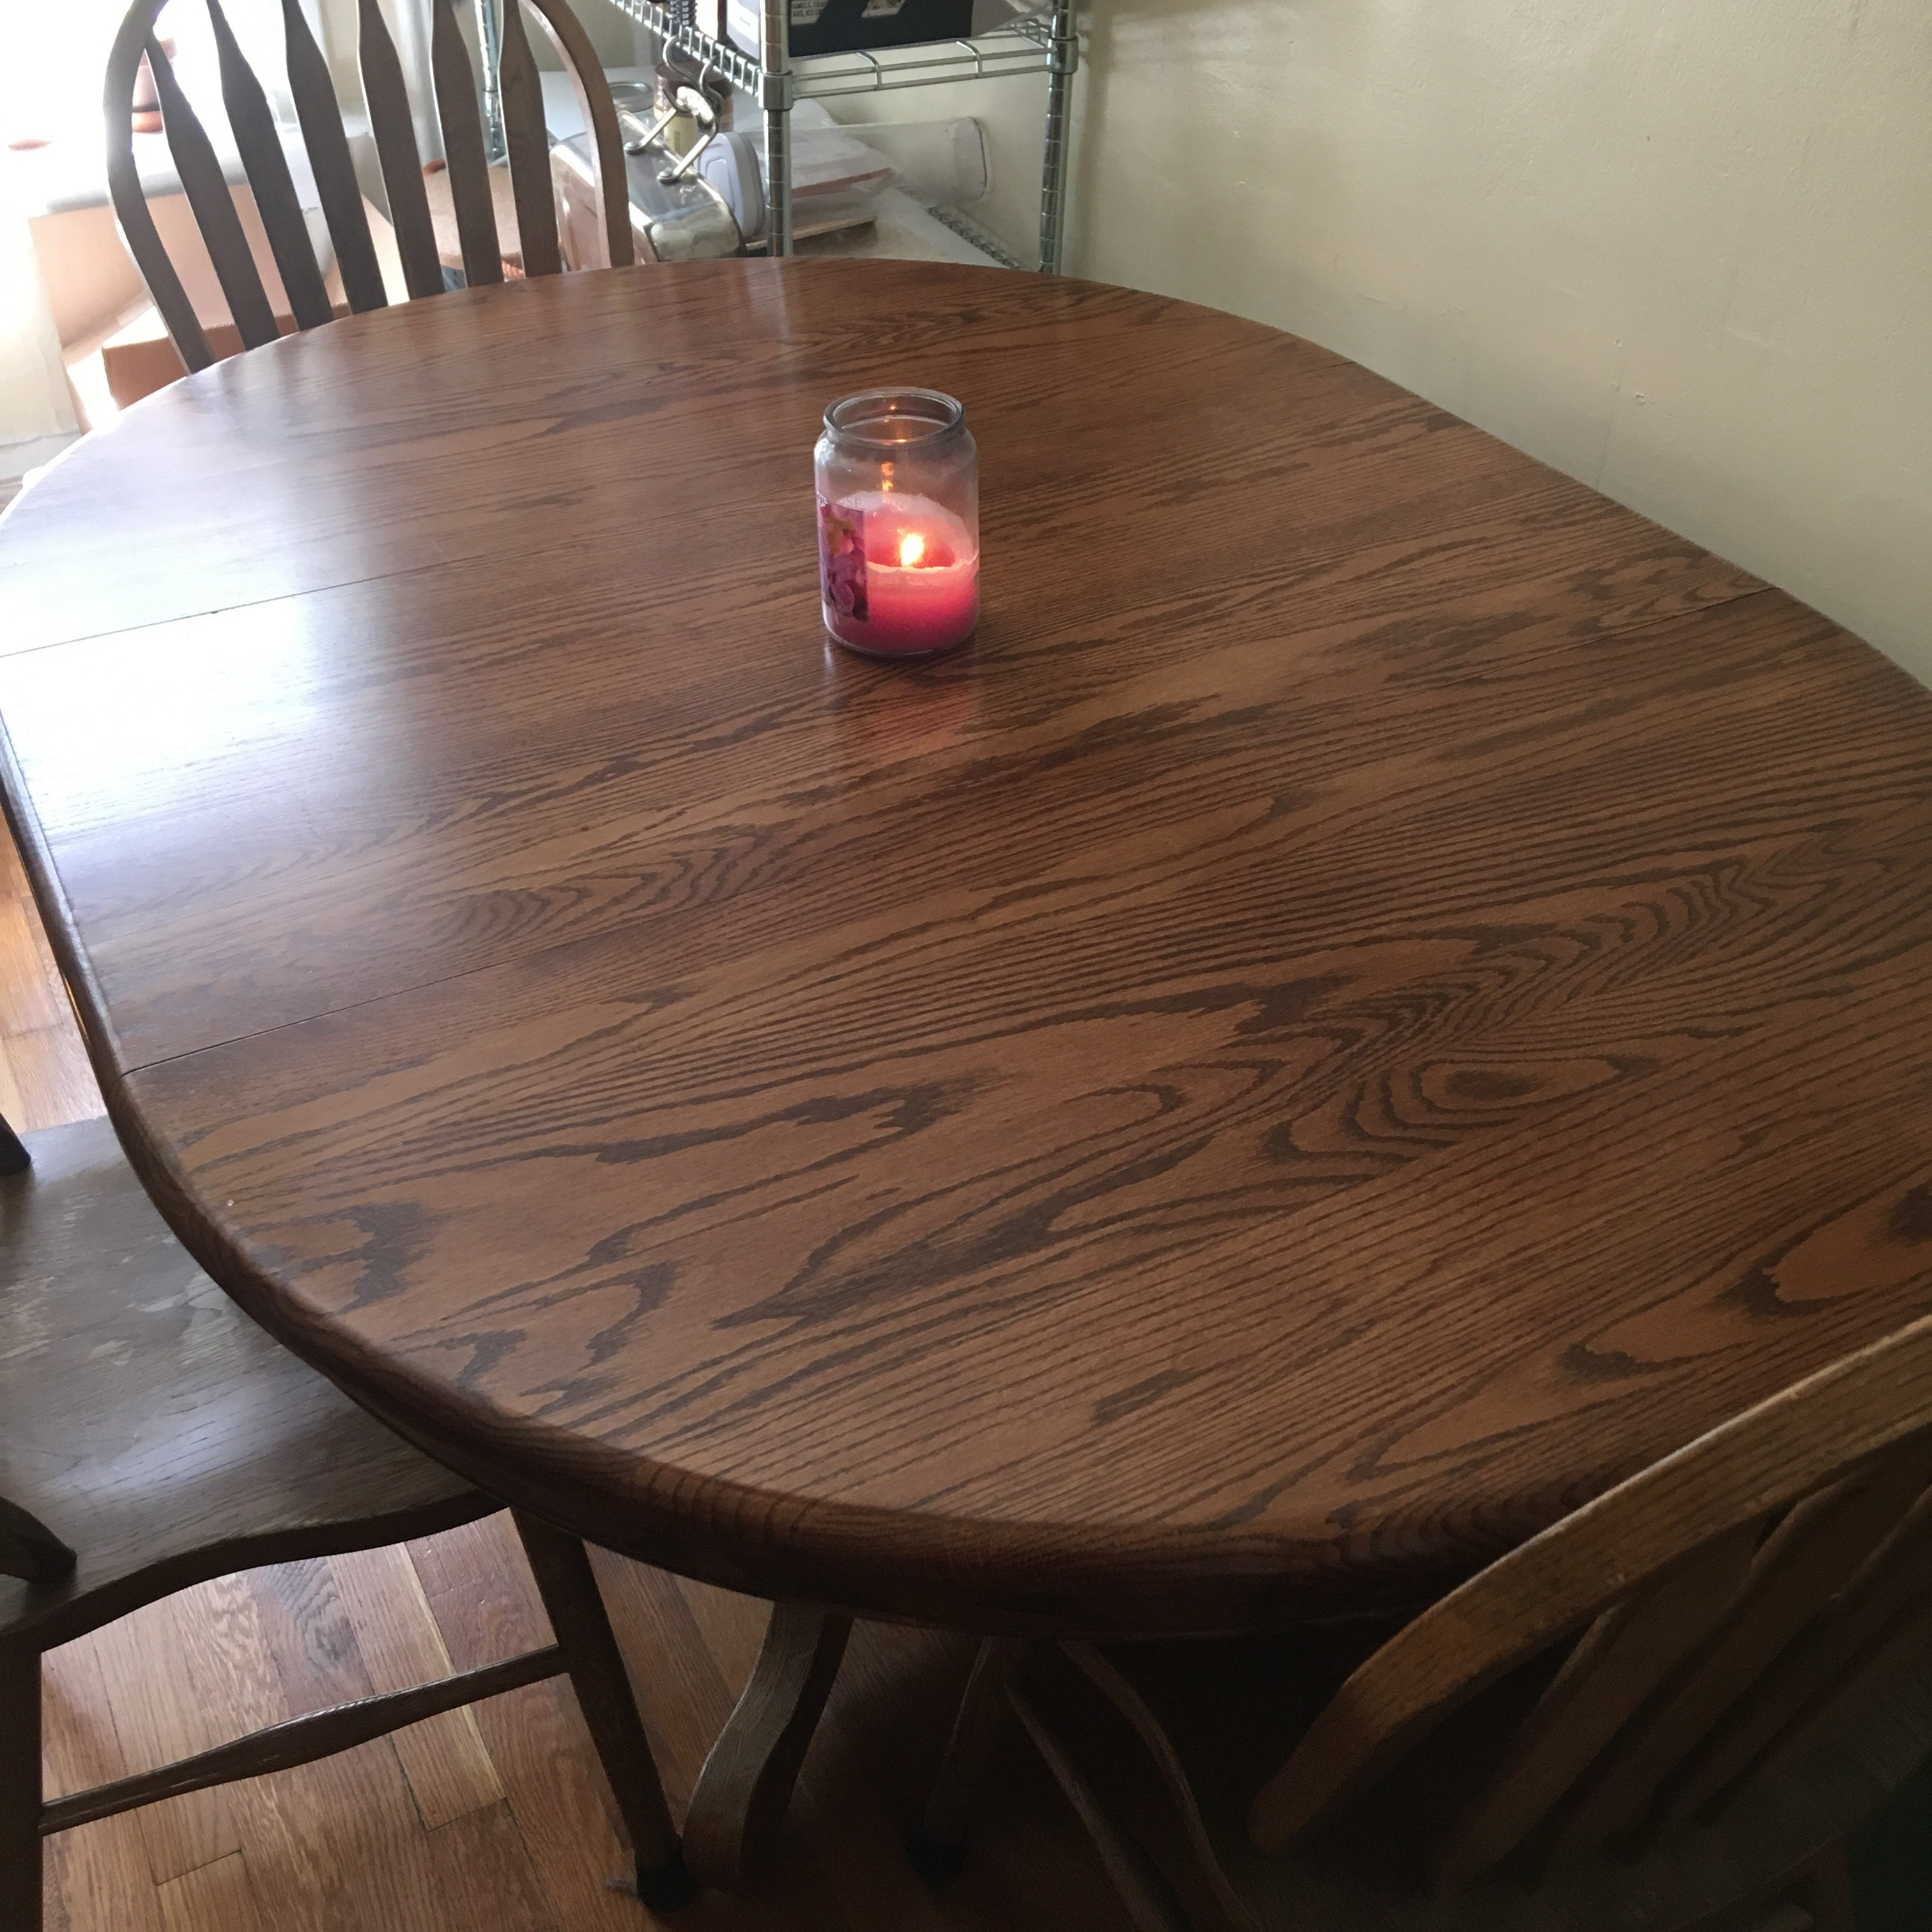 The kitchen table hasn't been this clear in at least a month